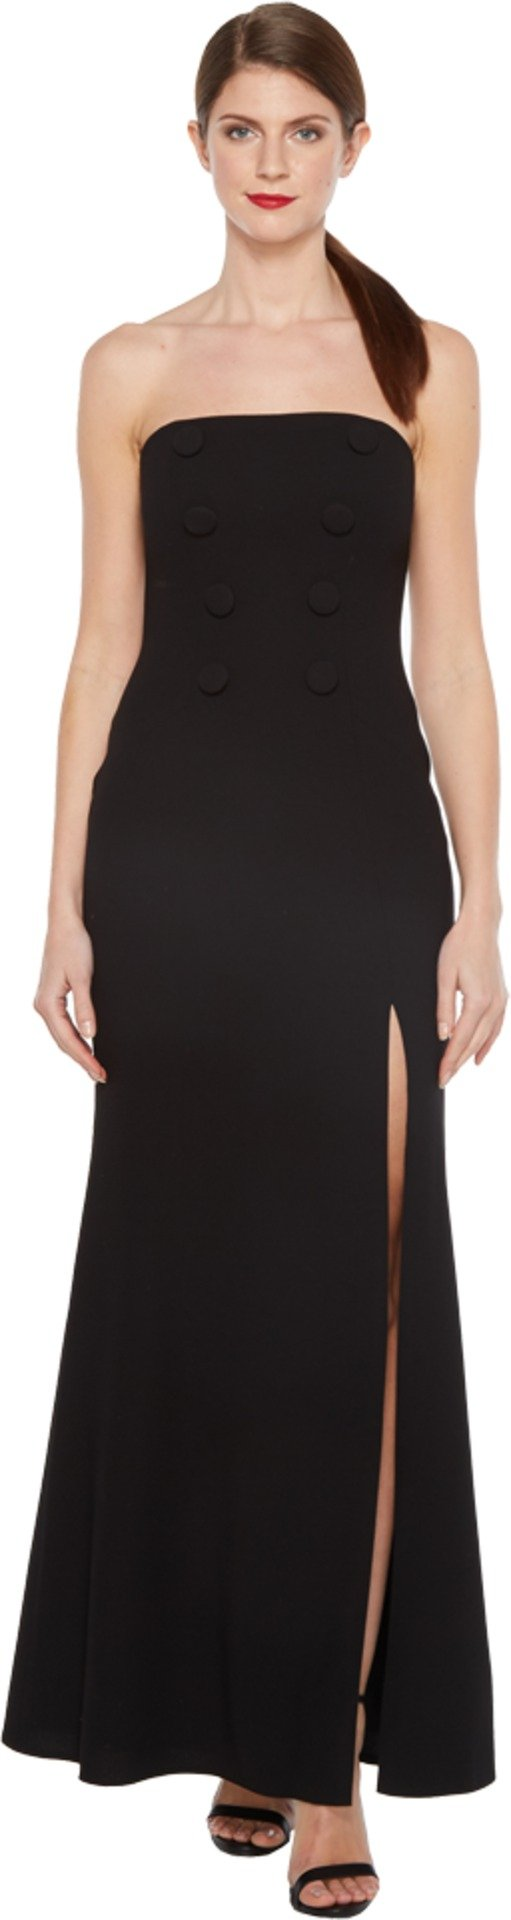 JILL JILL STUART Women's Strapless Hourglass Gown with Center Buttons, Front Slit and Side Pockets Black 14